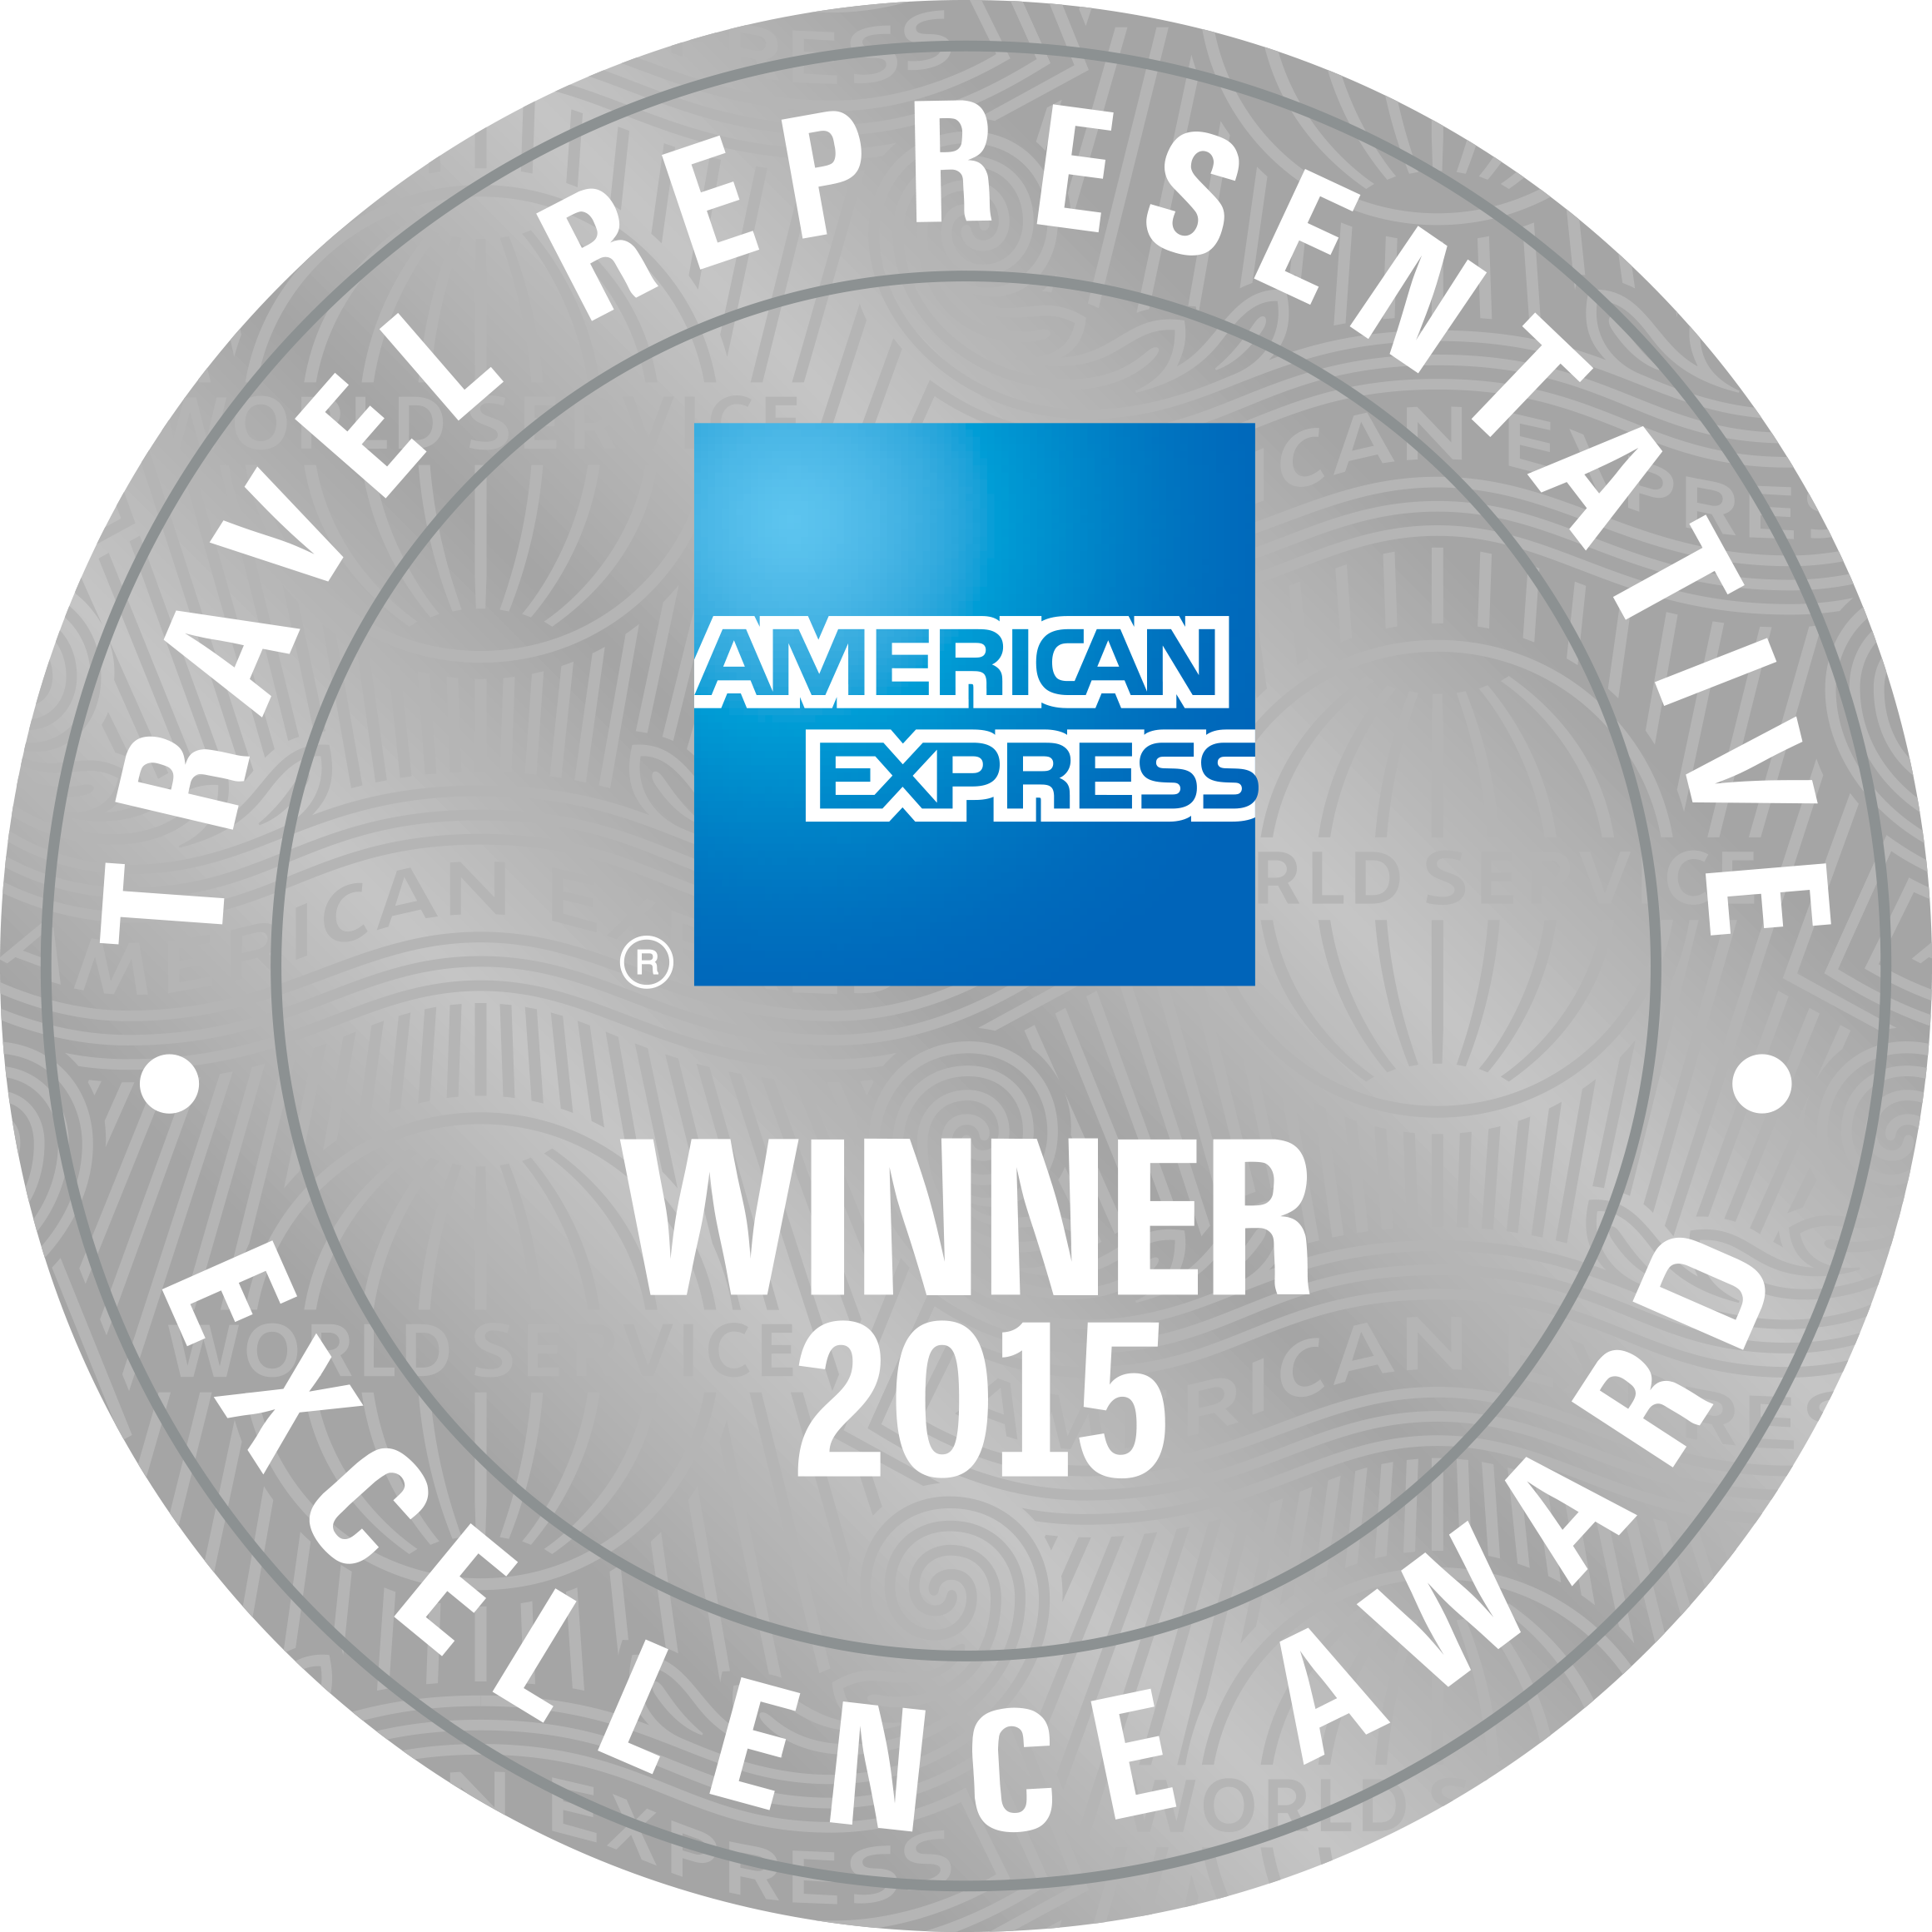 TRAVELINK, AMERICAN EXPRESS TRAVEL NAMED ONE OF AMERICAN EXPRESS TRAVEL'S 2015 REPRESENTATIVE